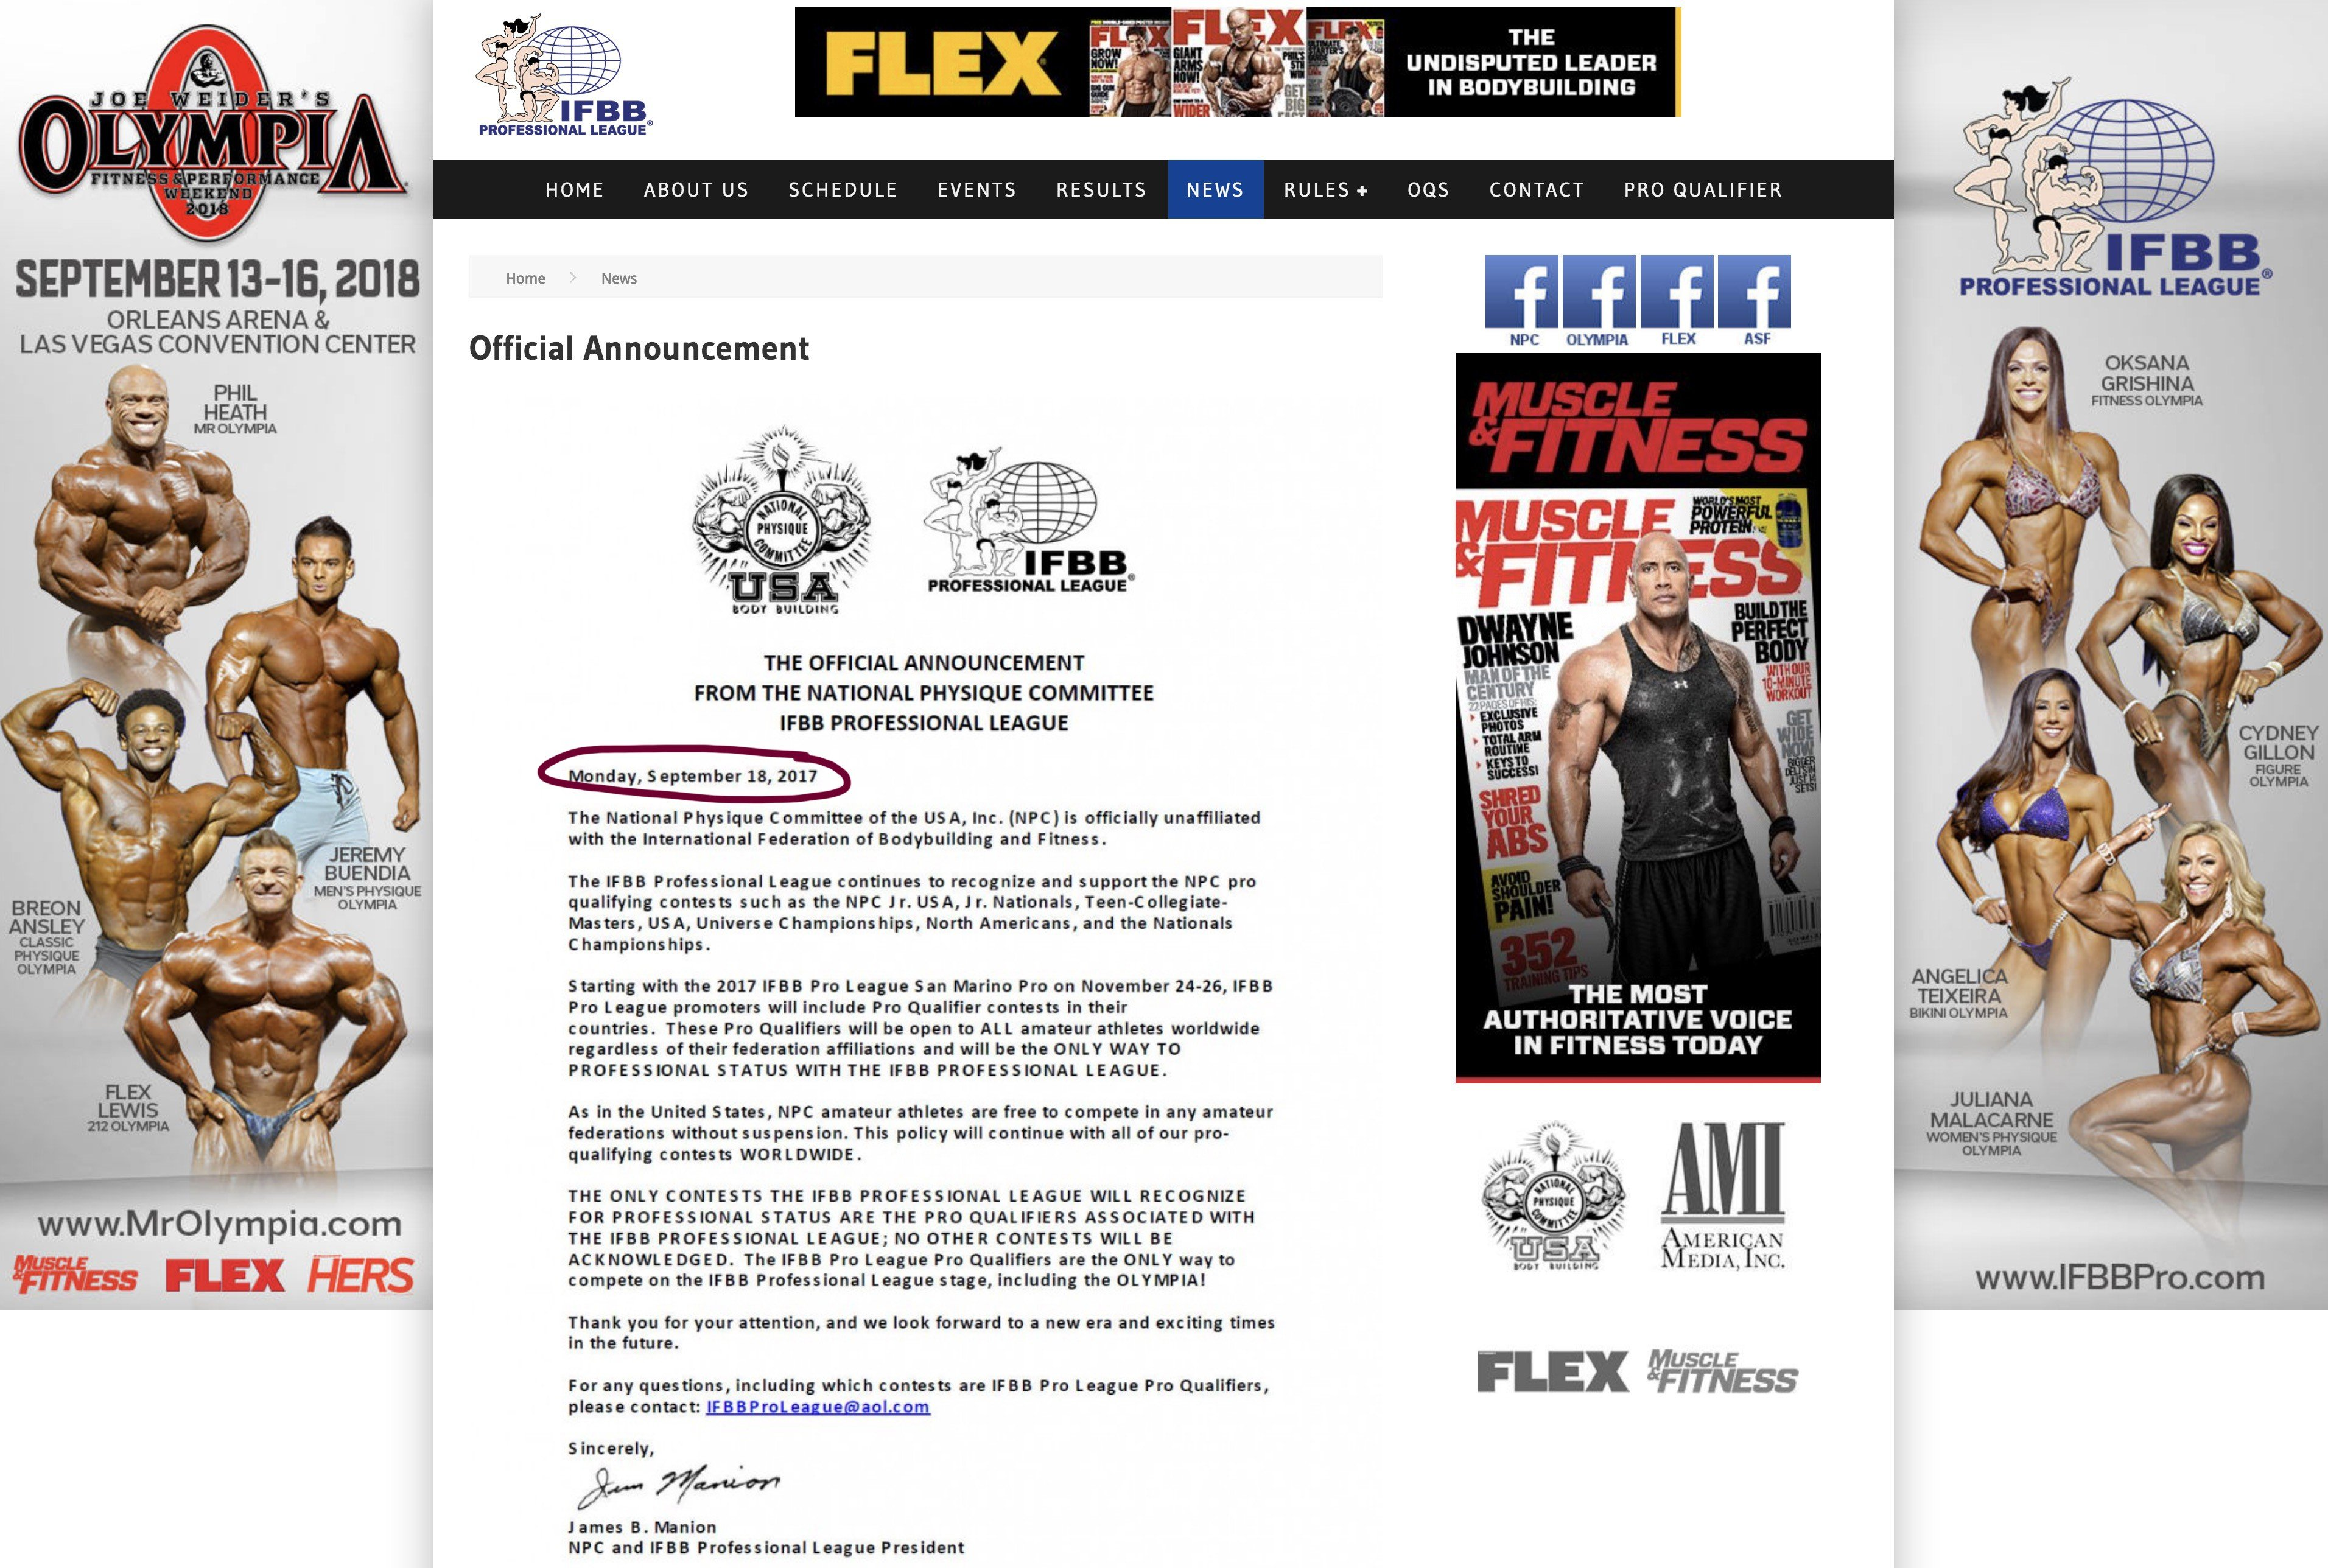 TRUTH: IFBB suspended